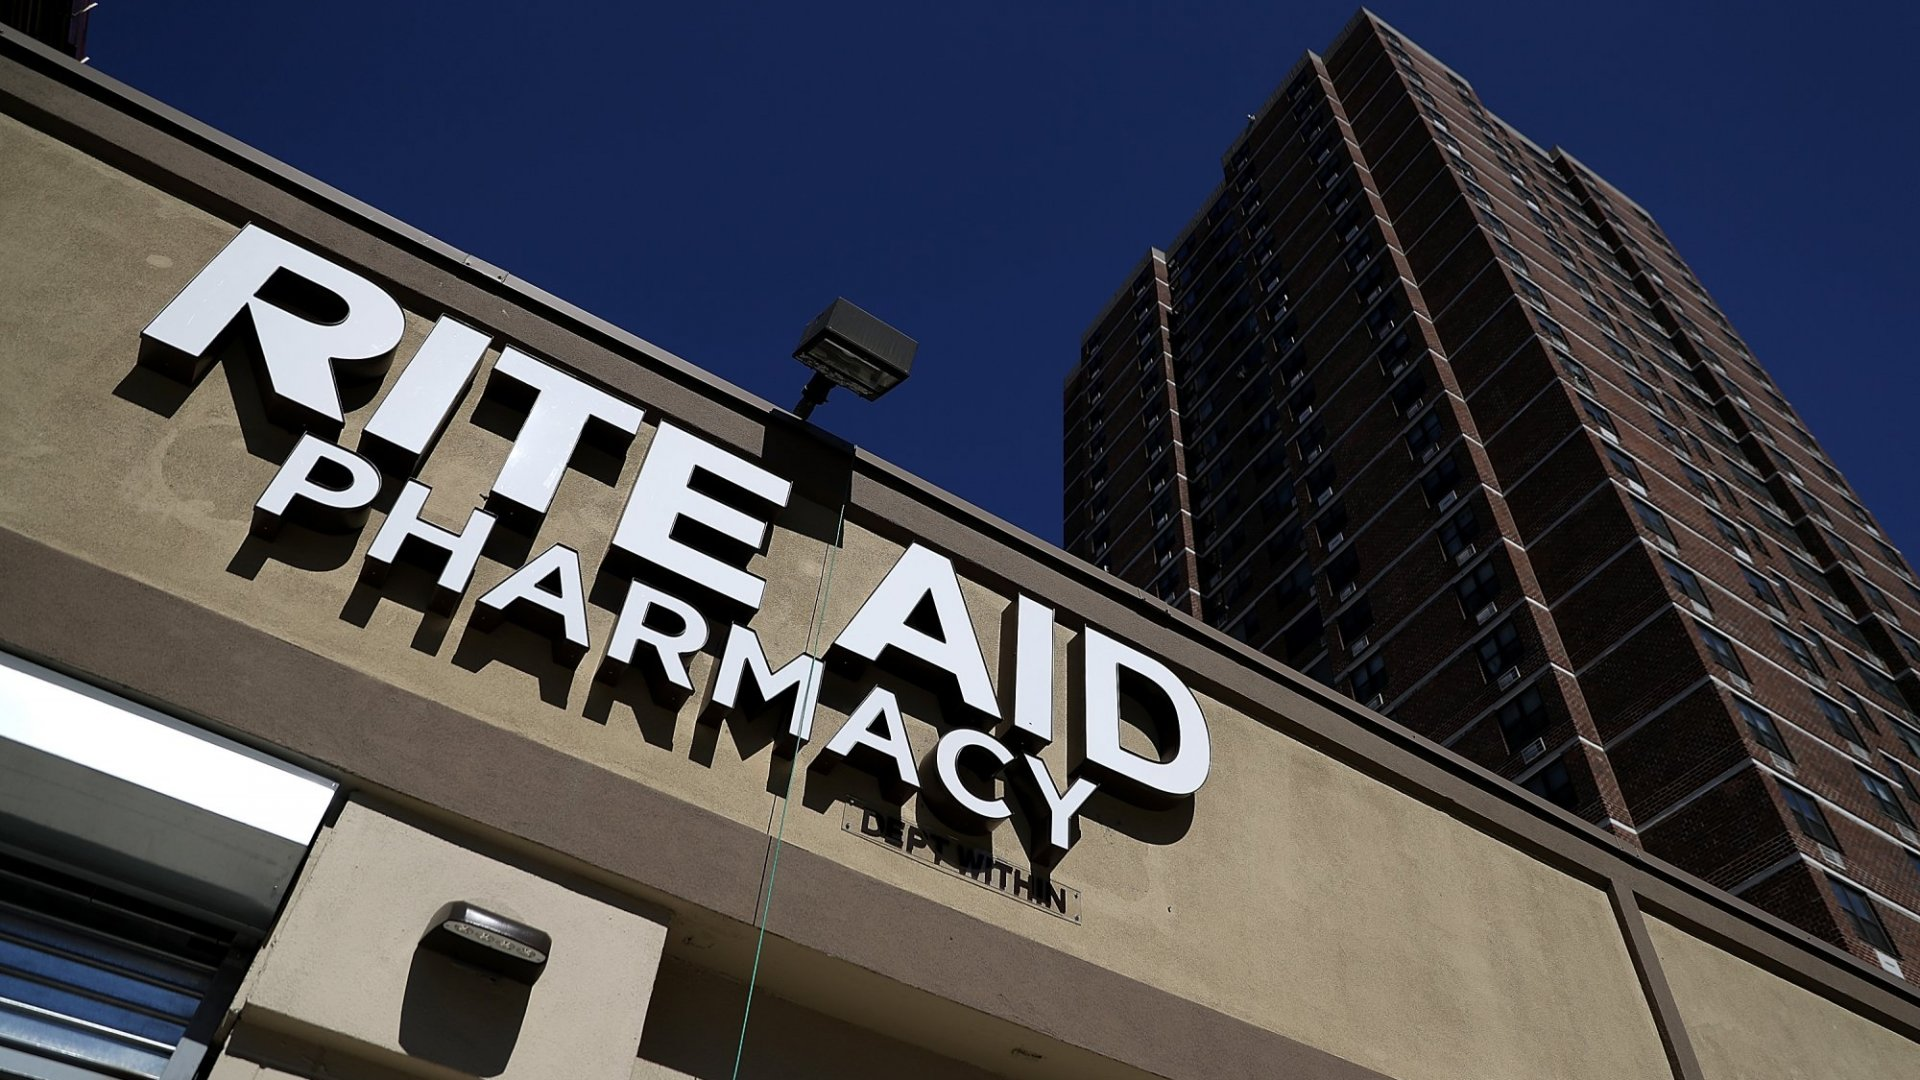 Amazon Has Partnered With Rite Aid to Offer Package Pickup at 1,500 Pharmacy Locations